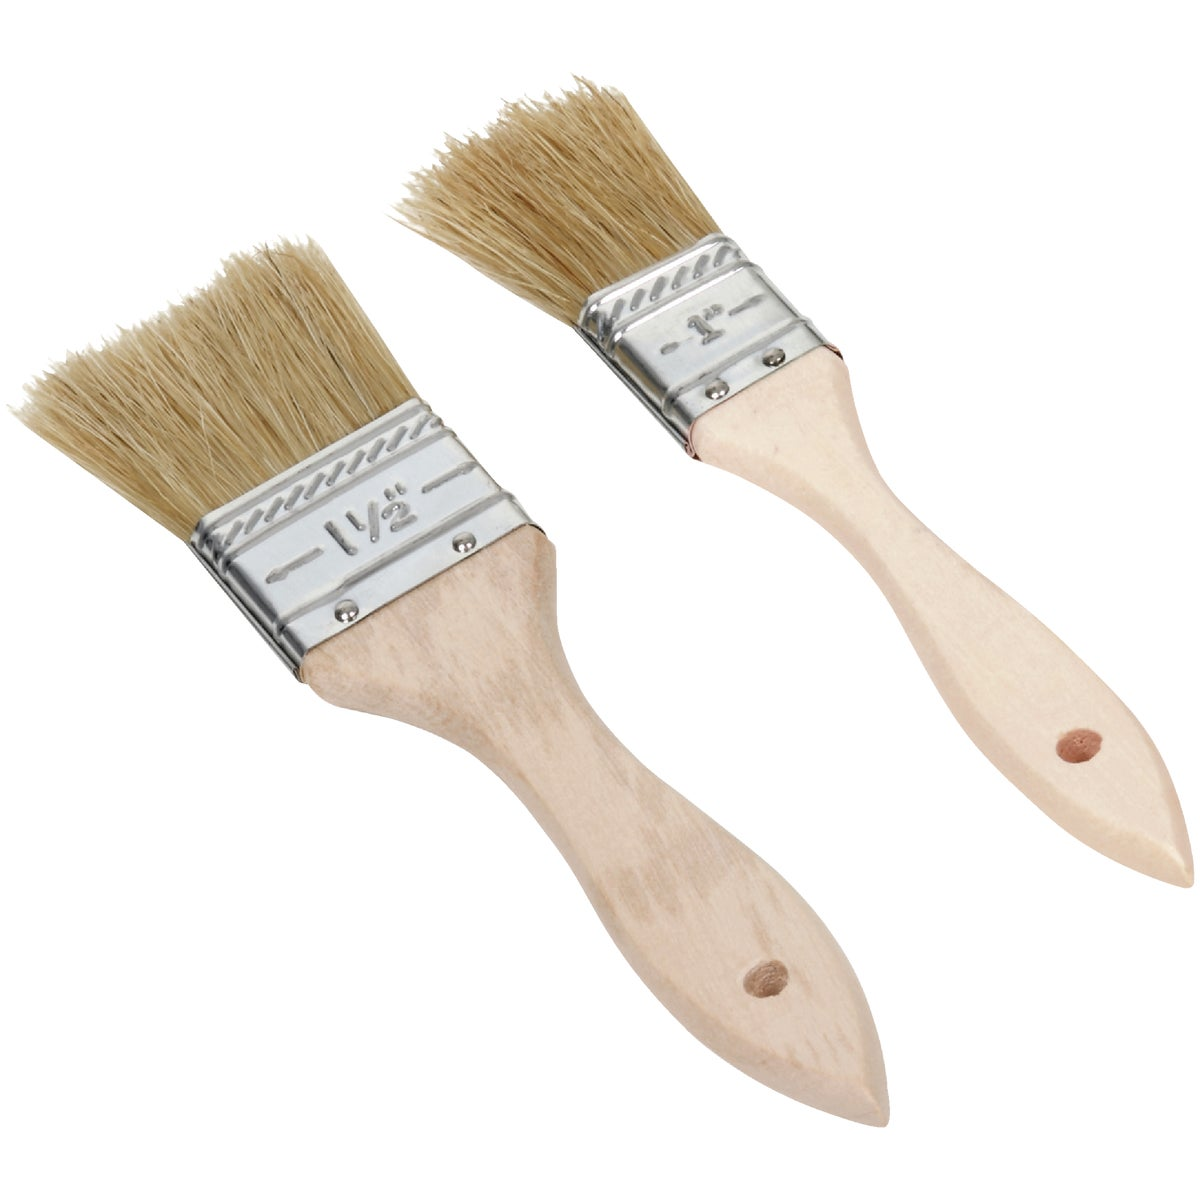 2PC BASTING BRUSH SET